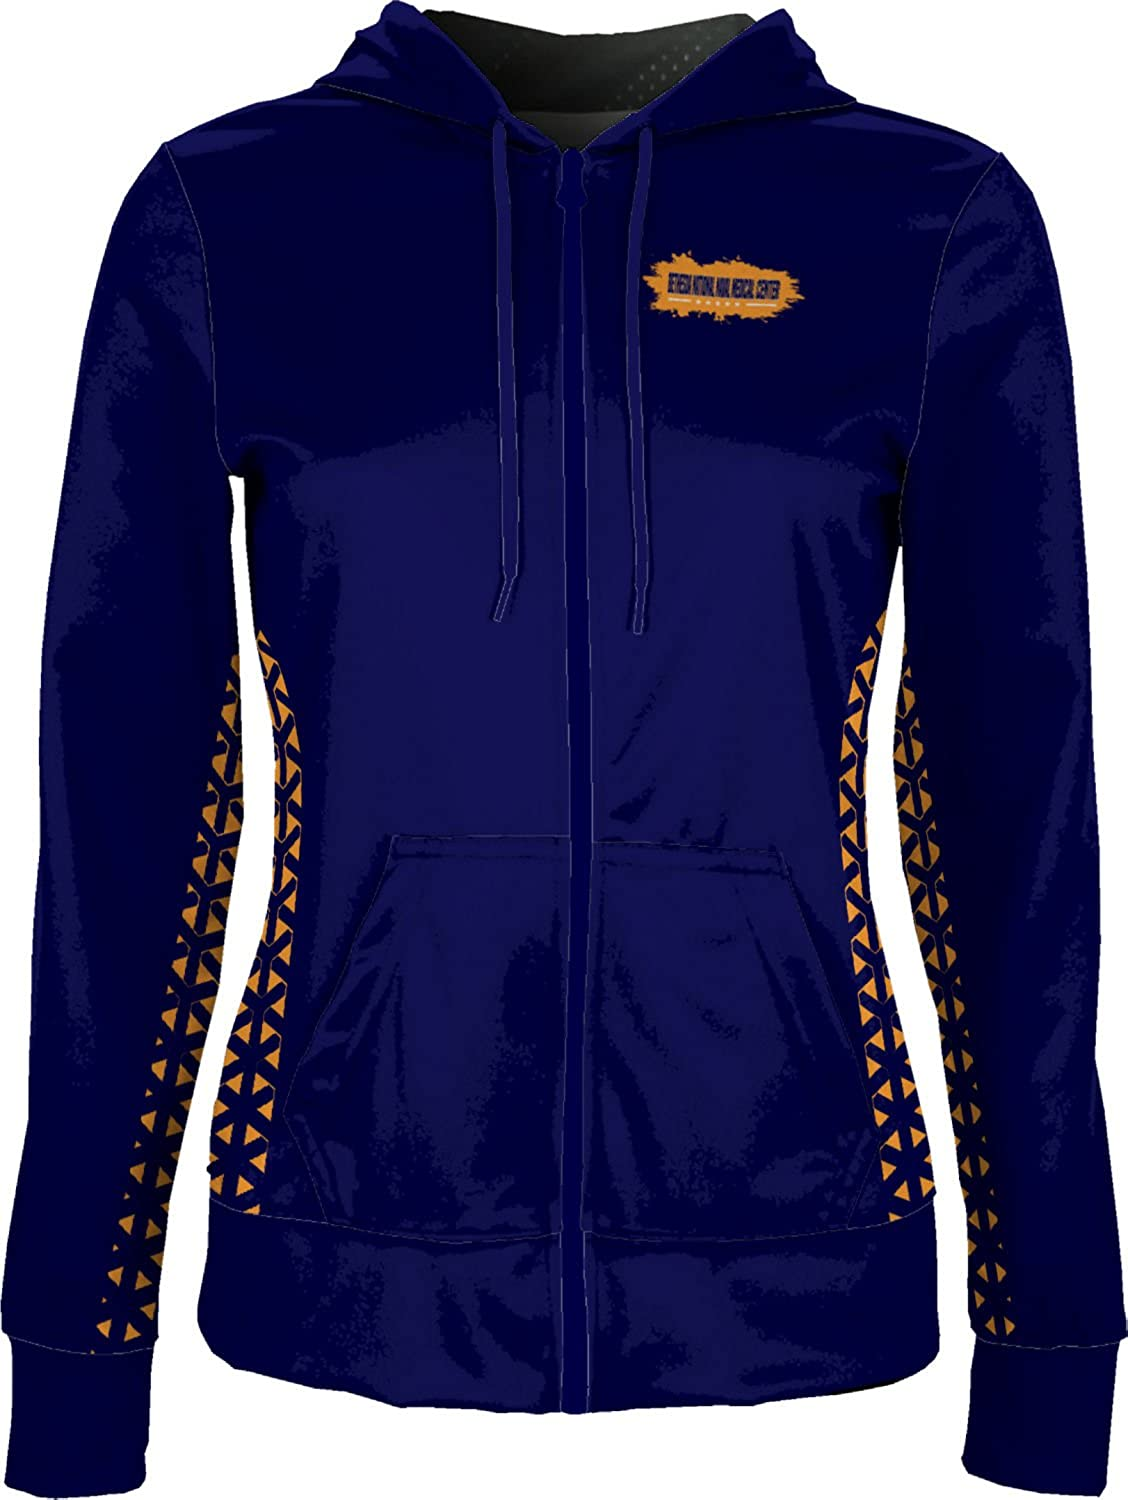 Women's Bethesda National Naval Medical Center Military Geometric Fullzip Hoodie